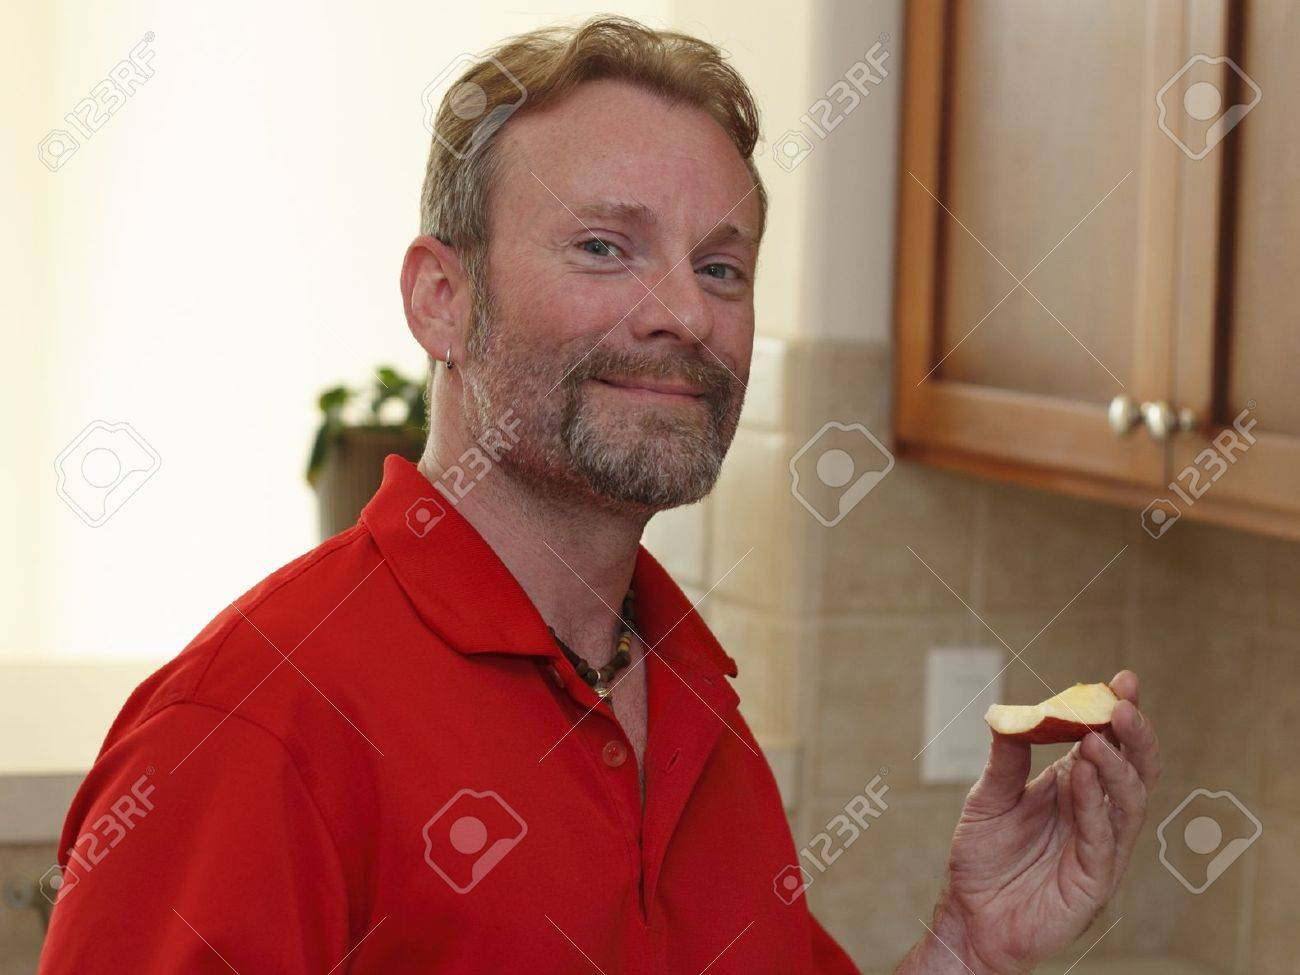 Mature man with a beard and slight smile looking at viewer while holding up an apple wedge in a kitchen. Stock Photo - 14109763